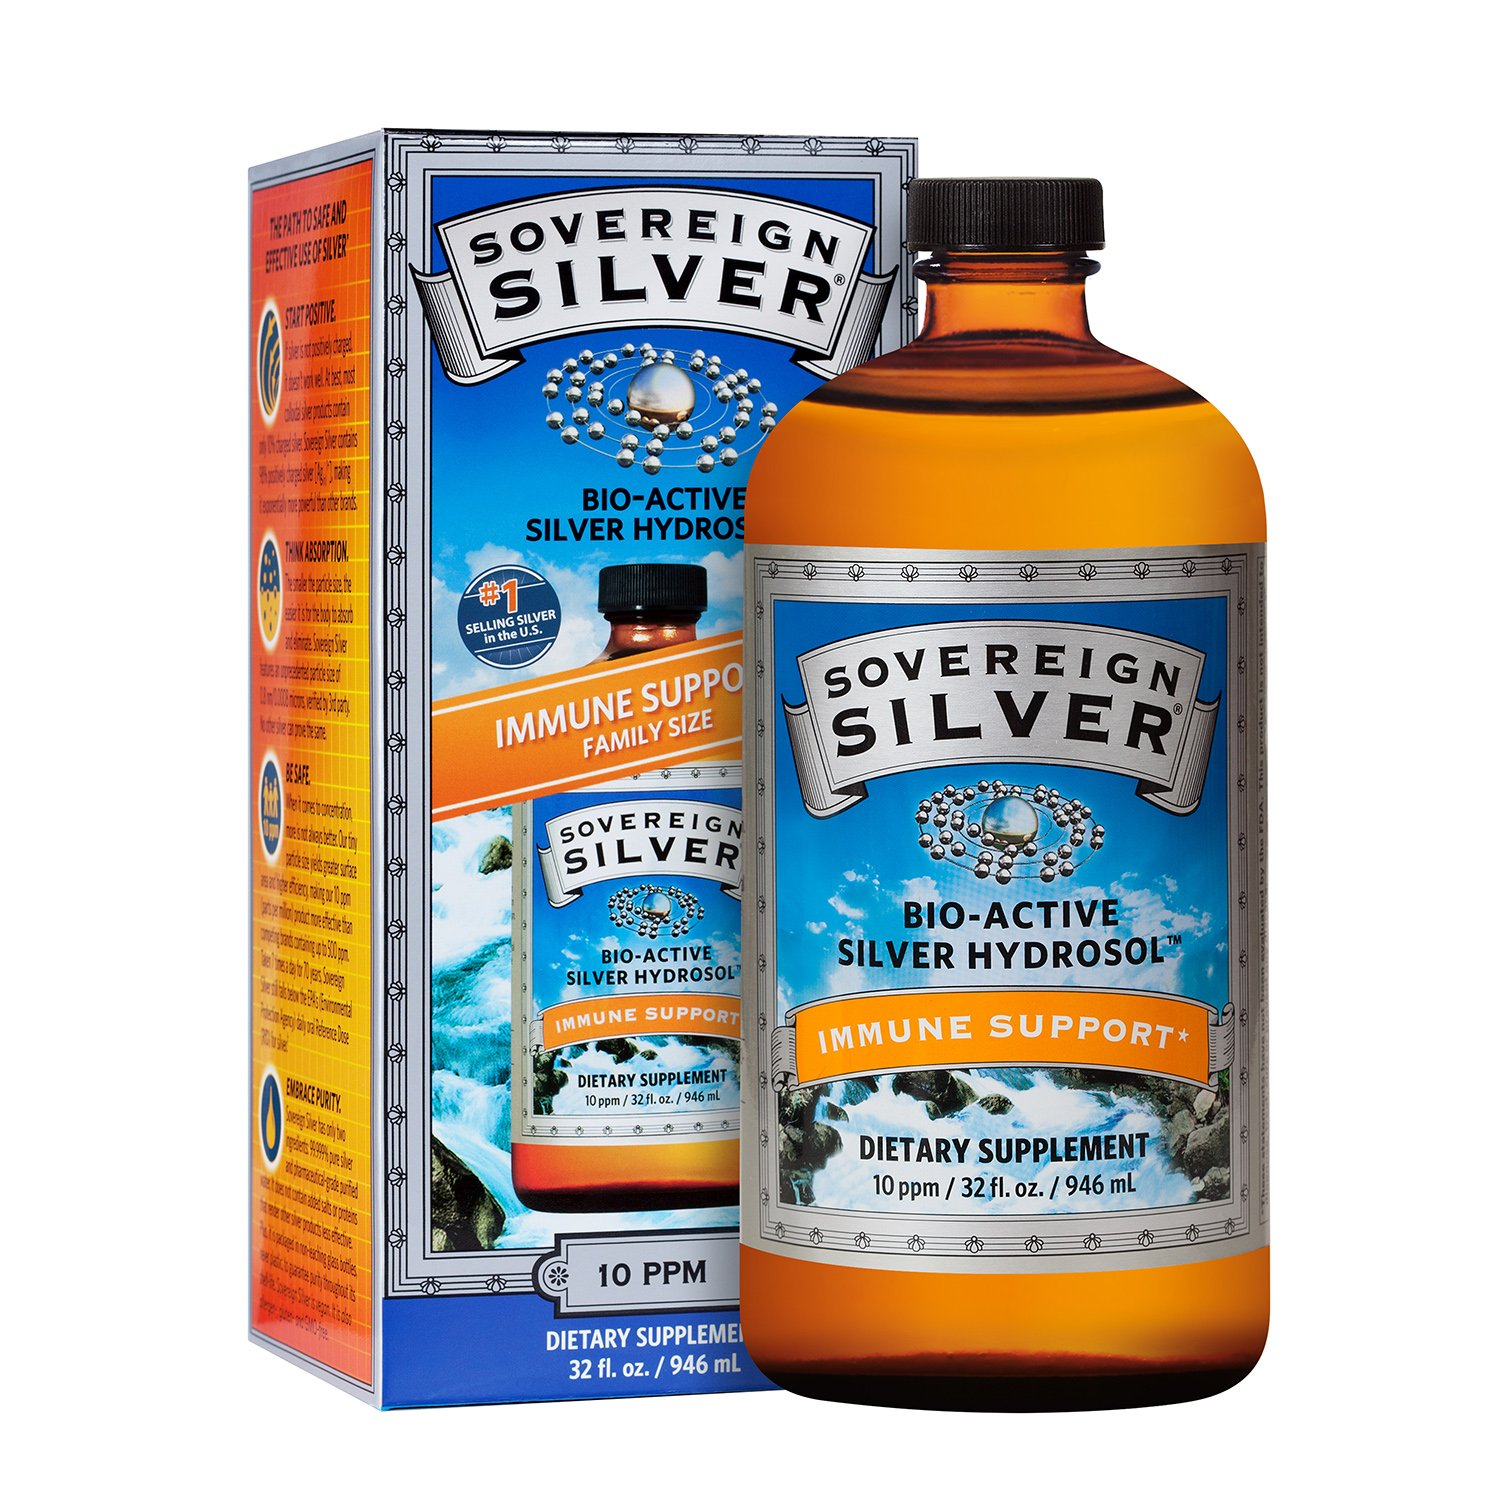 Sovereign Silver Bio-Active Silver Hydrosol for Immune Support* - 32oz – The Ultimate Refinement of Colloidal Silver - Safe*, Pure and Effective* - Premium Silver Supplement - Family Size